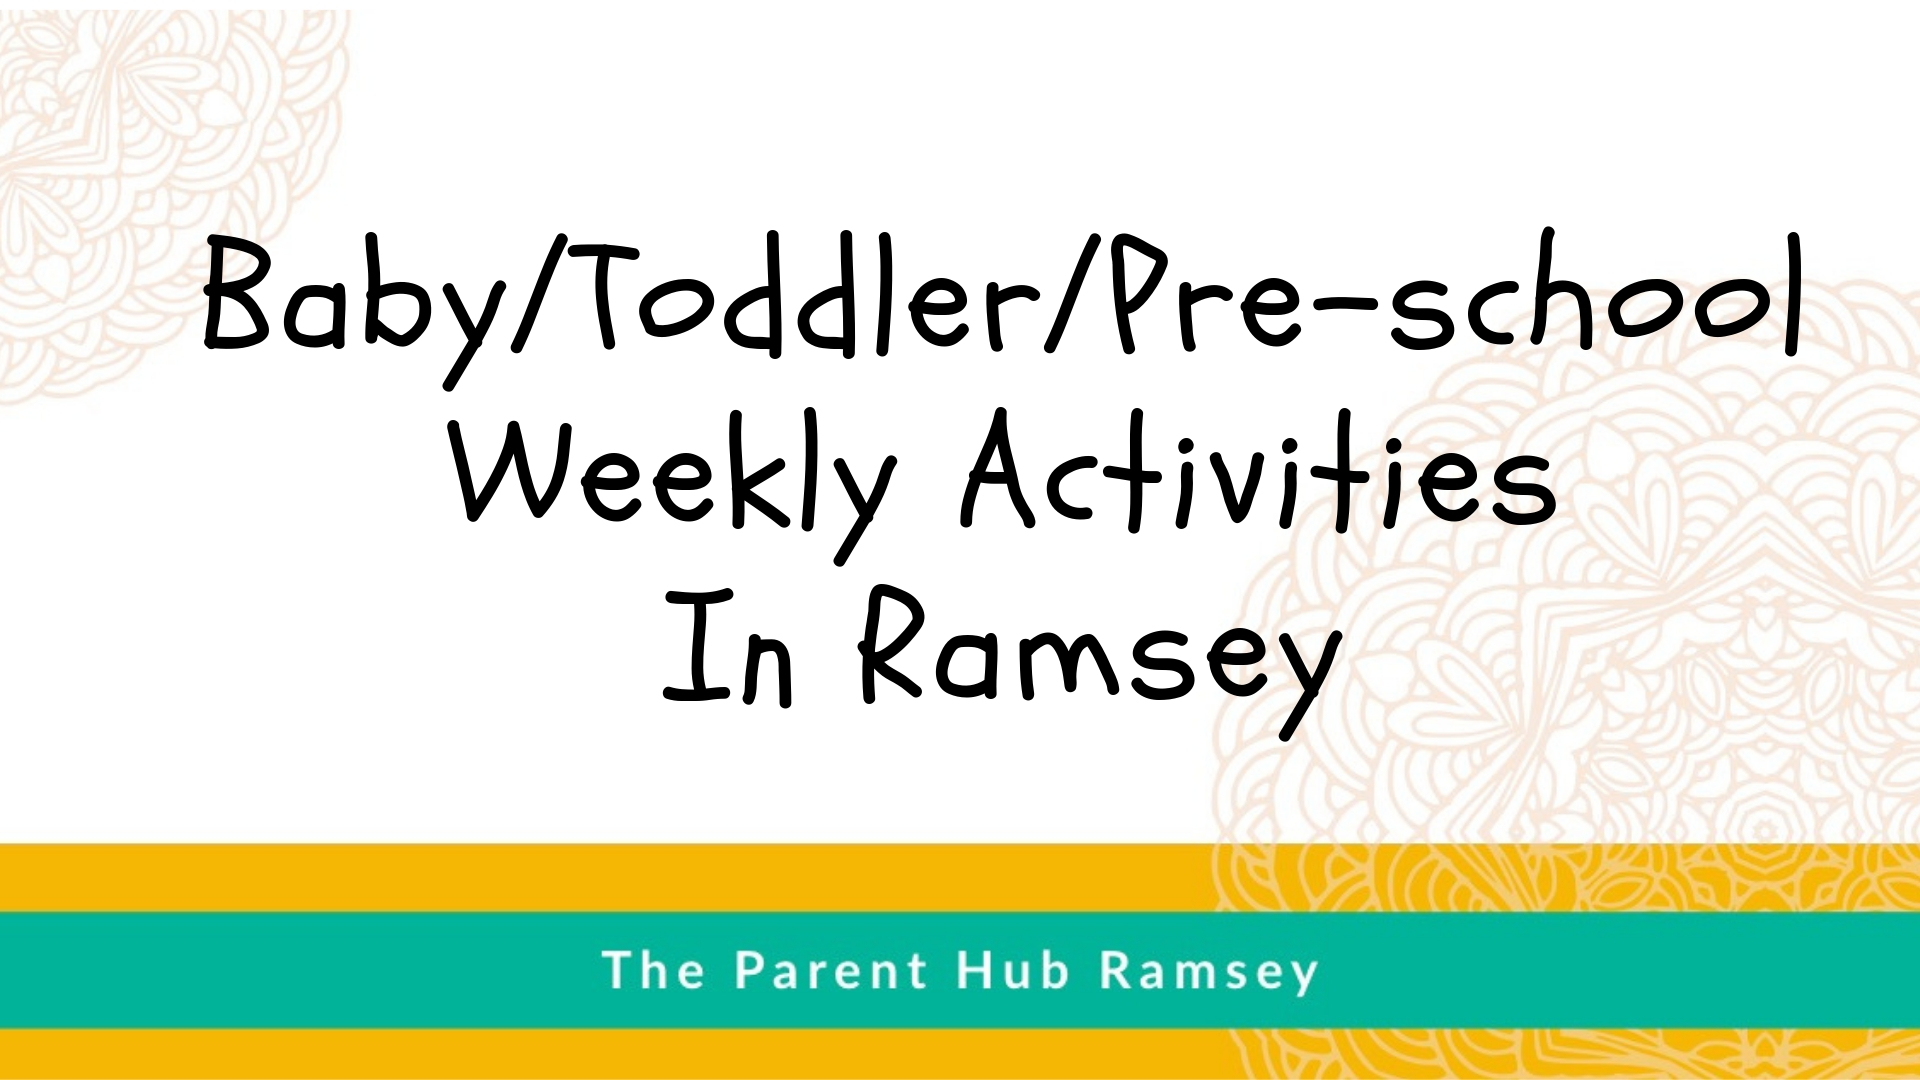 Pre-school activities in Ramsey